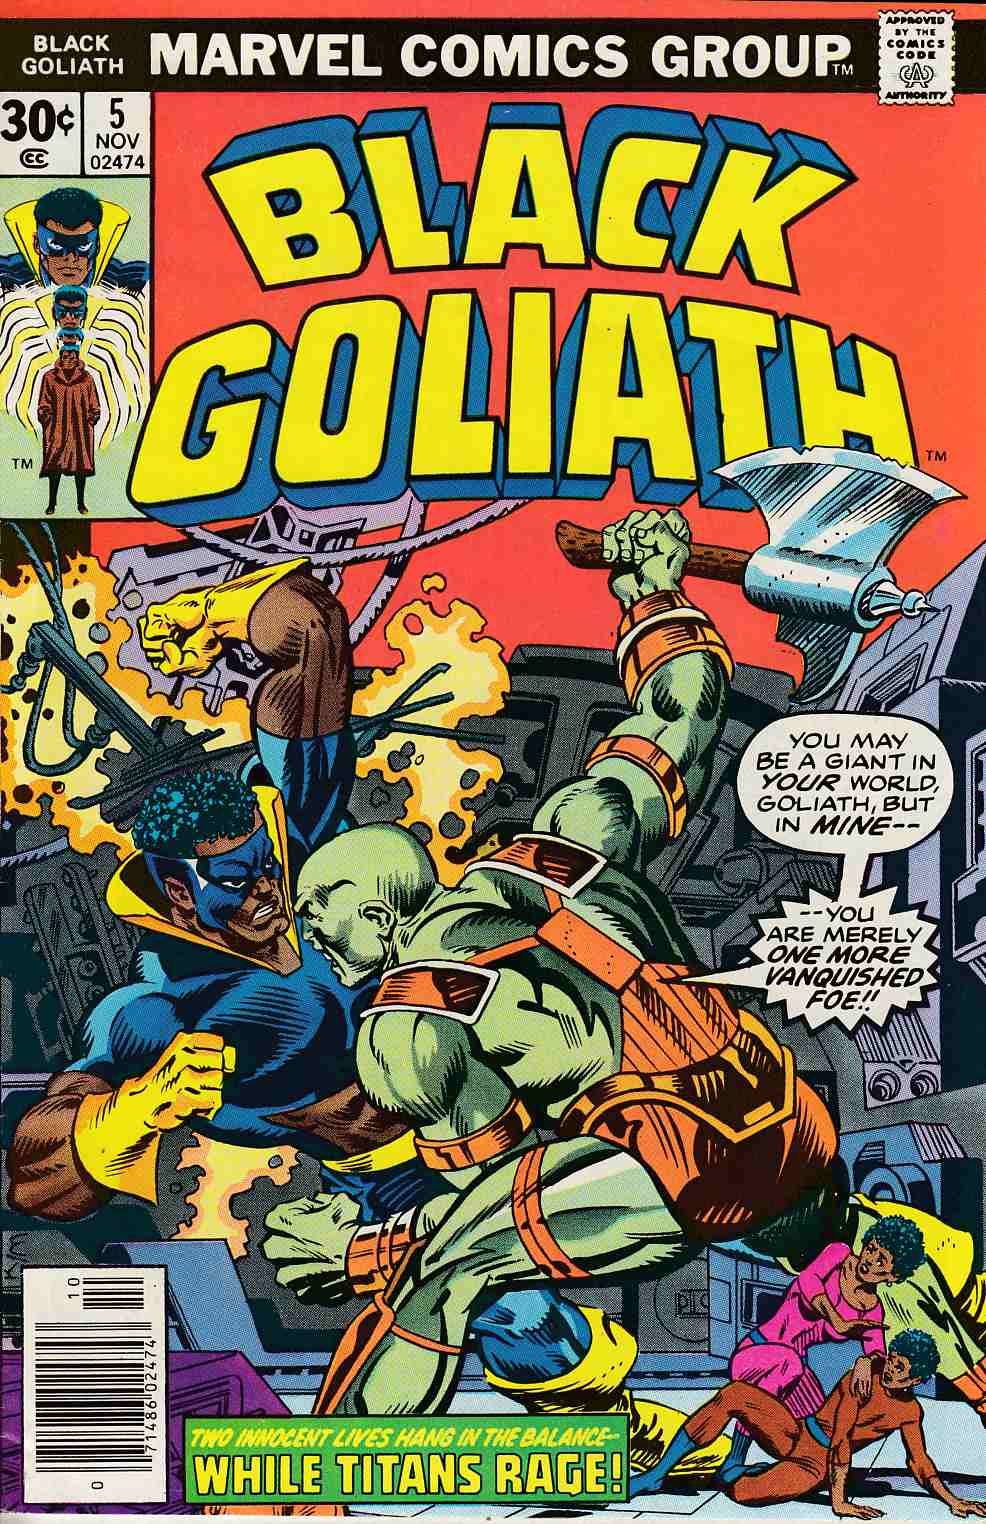 Black Goliath #5 Very Fine (8.0) [Marvel Comic] THUMBNAIL